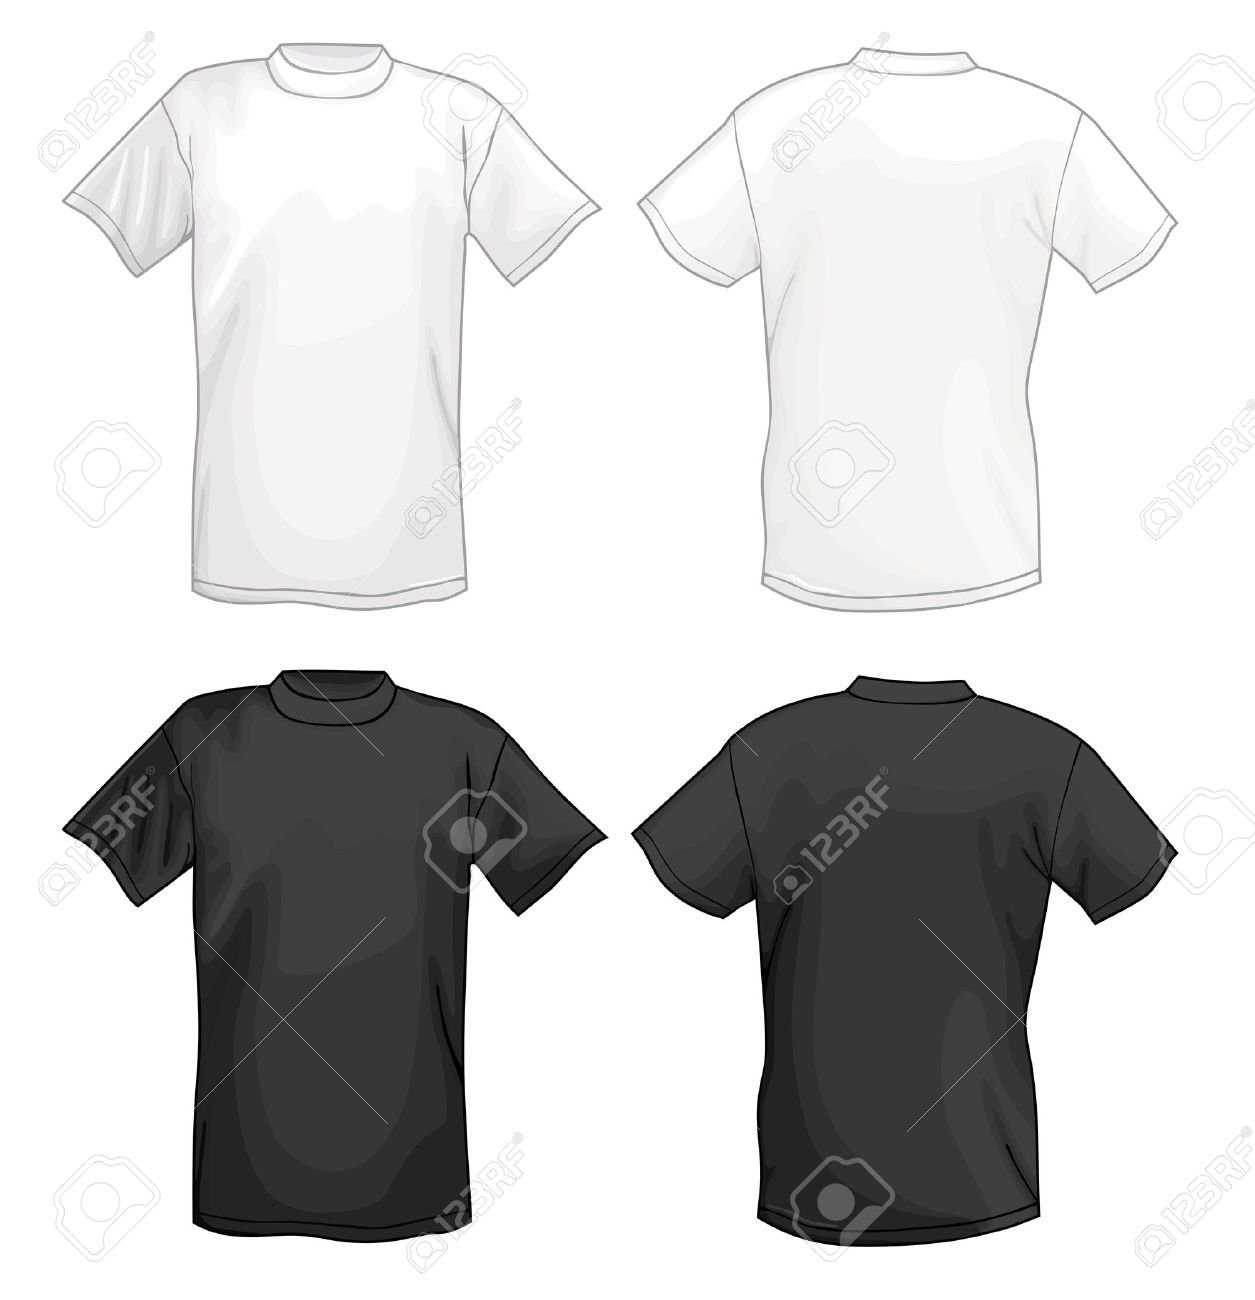 Black t shirt vector template - White Vector T Shirt Design Template Front Back Isolated On Black Background